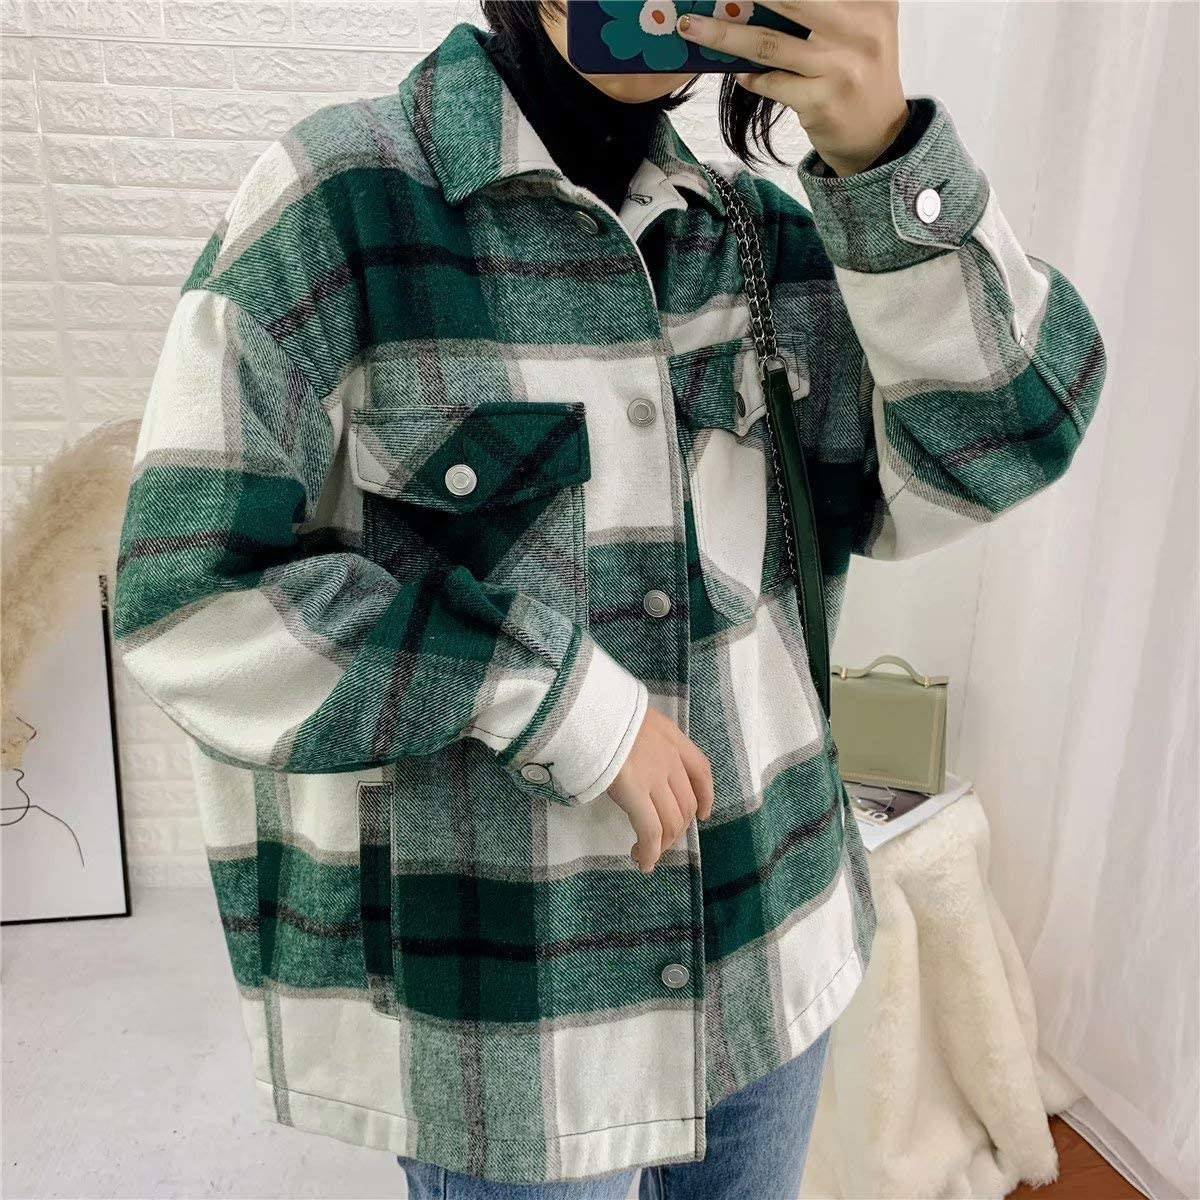 a person taking a photo of themselves in a mirror wearing the jacket